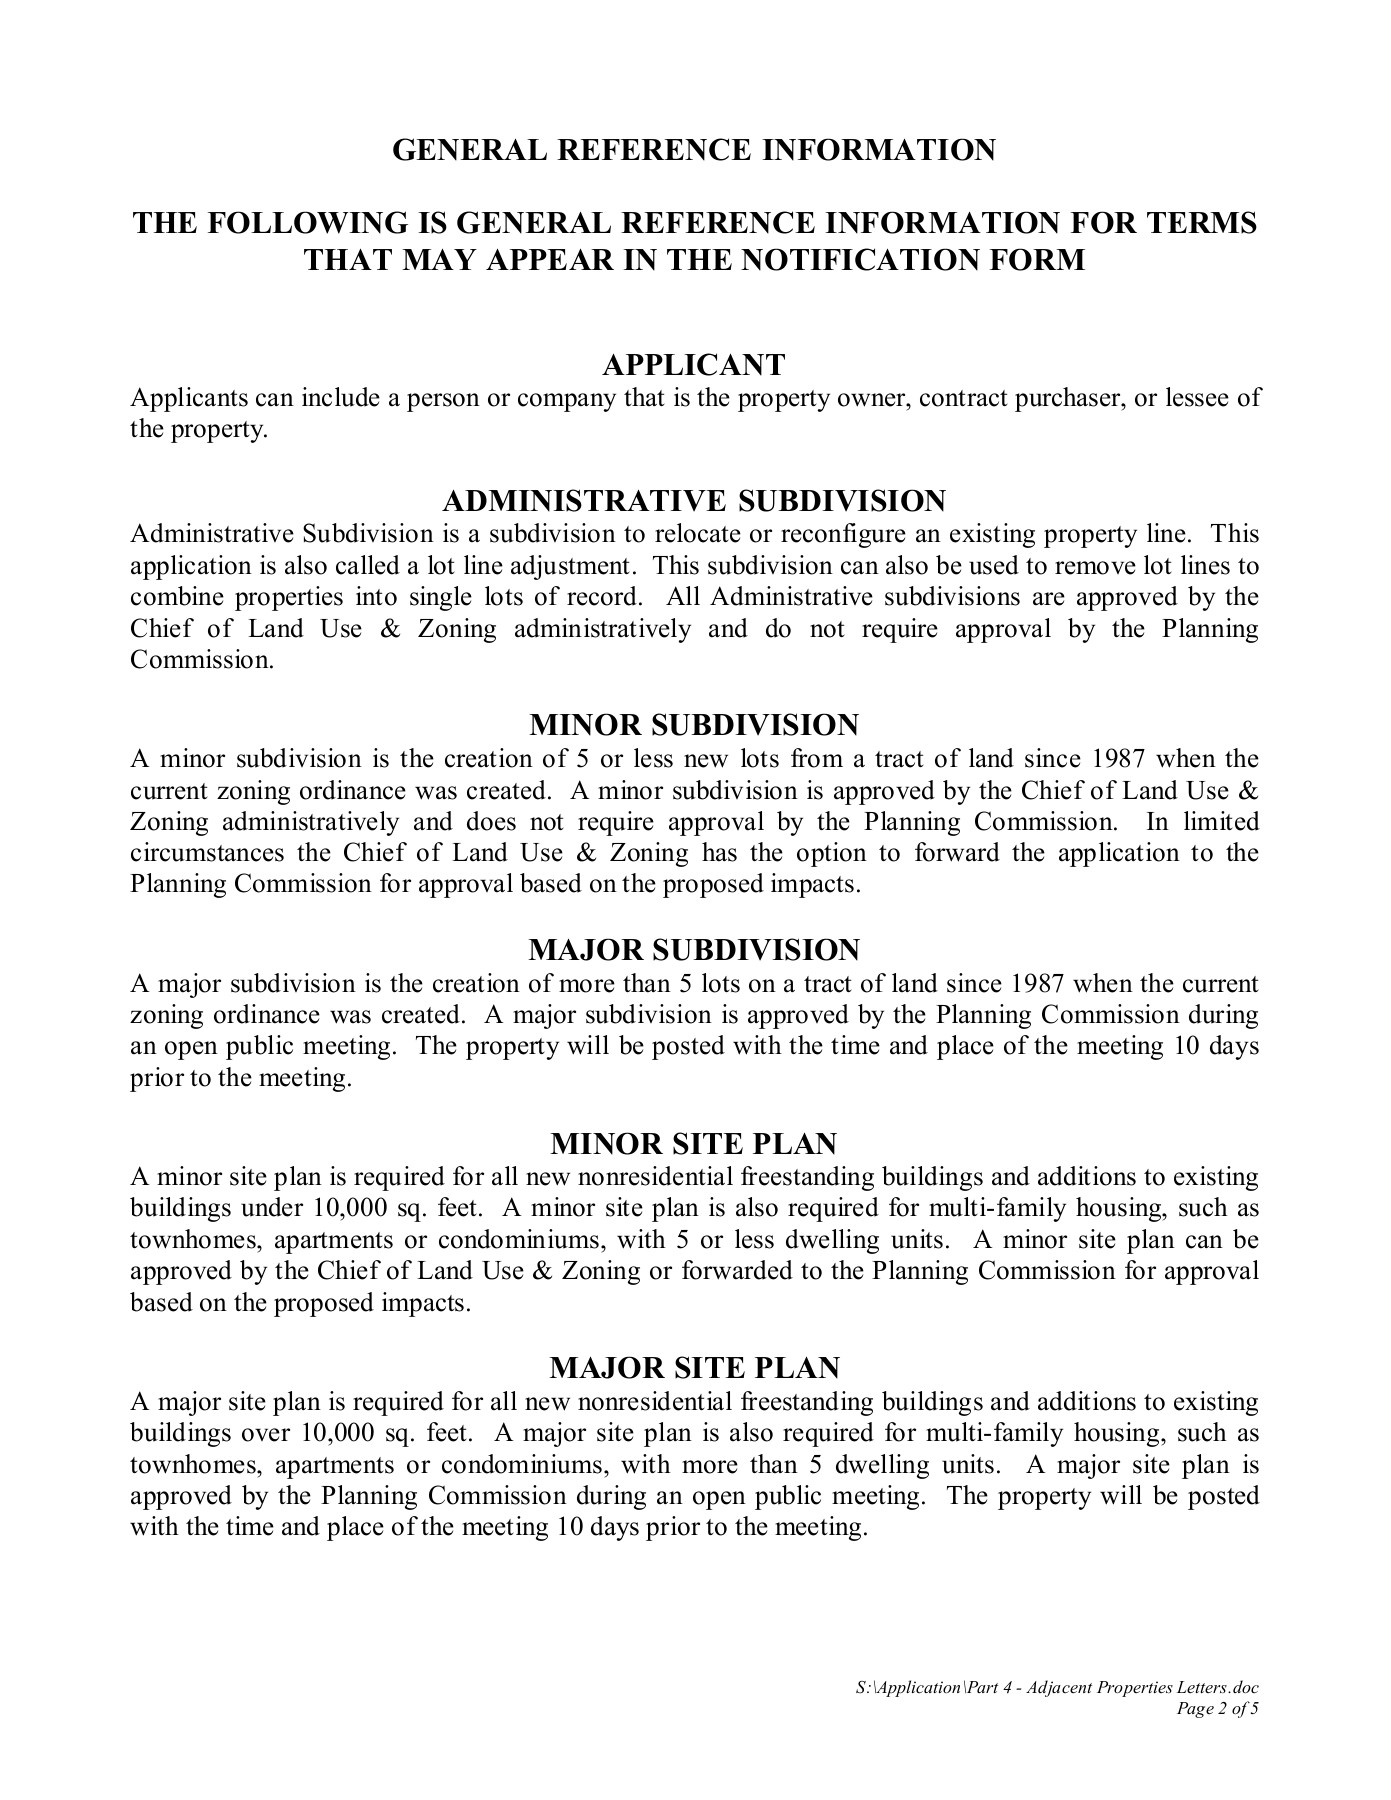 NOTIFICATION FORM TO ADJACENT PROPERTY OWNERS